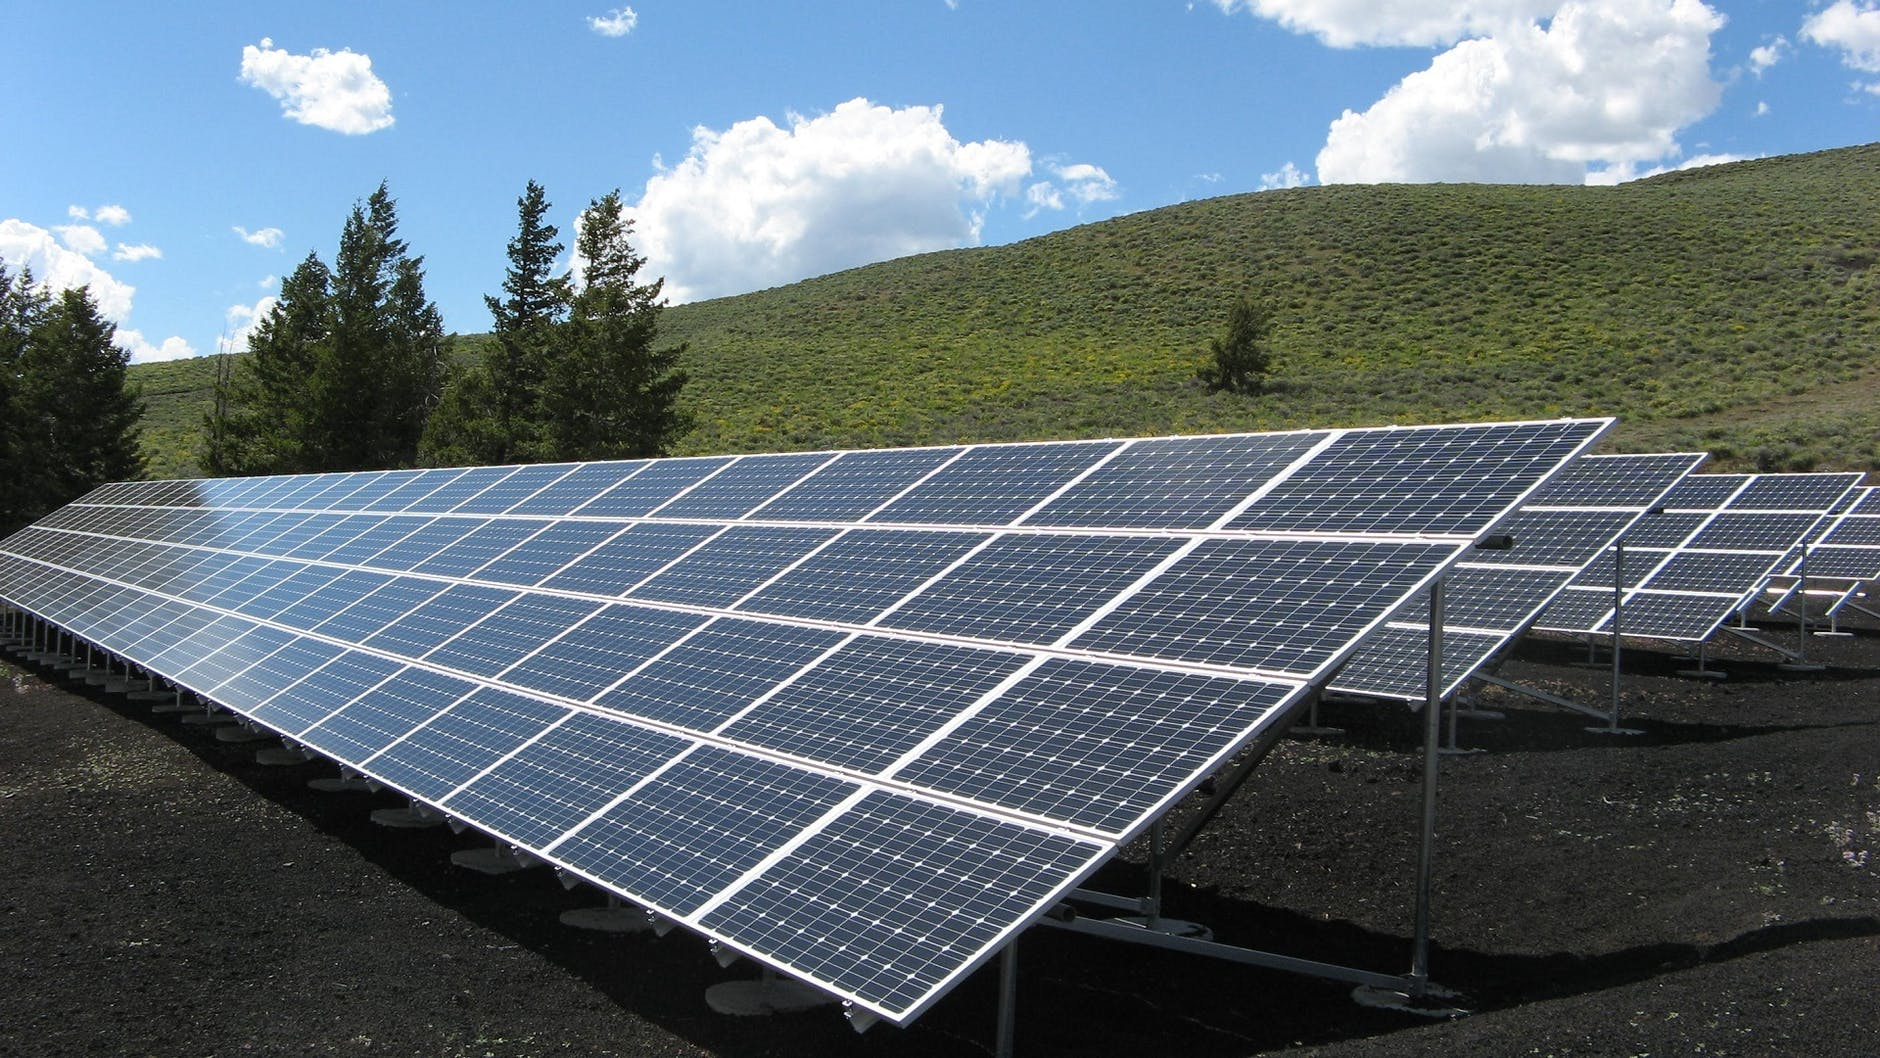 Solar panels are a great source of renewable energy.